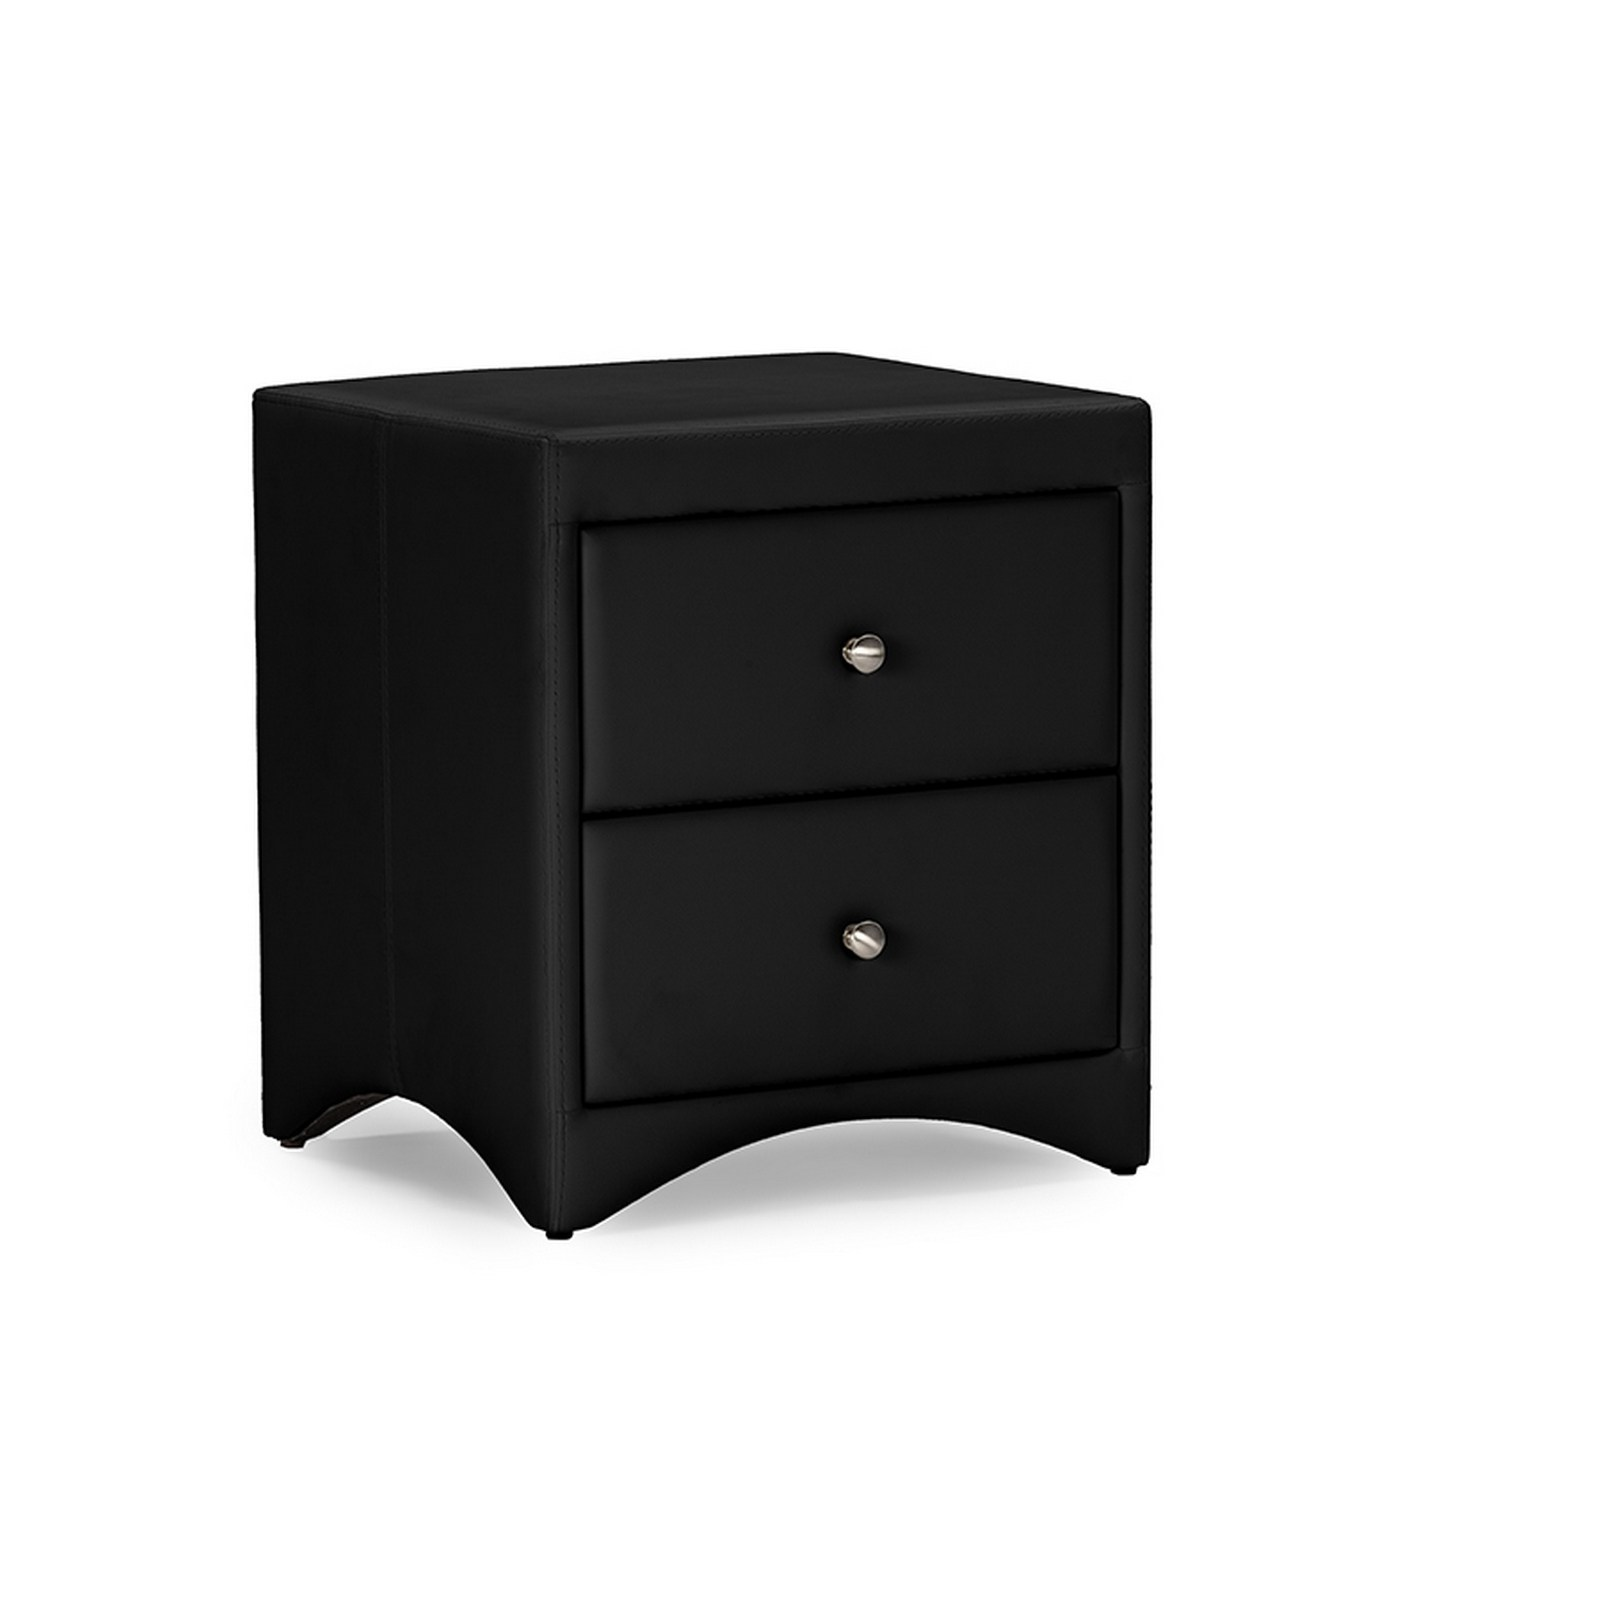 Urban Designs Dorian Black Faux Leather Upholstered Modern Nightstand